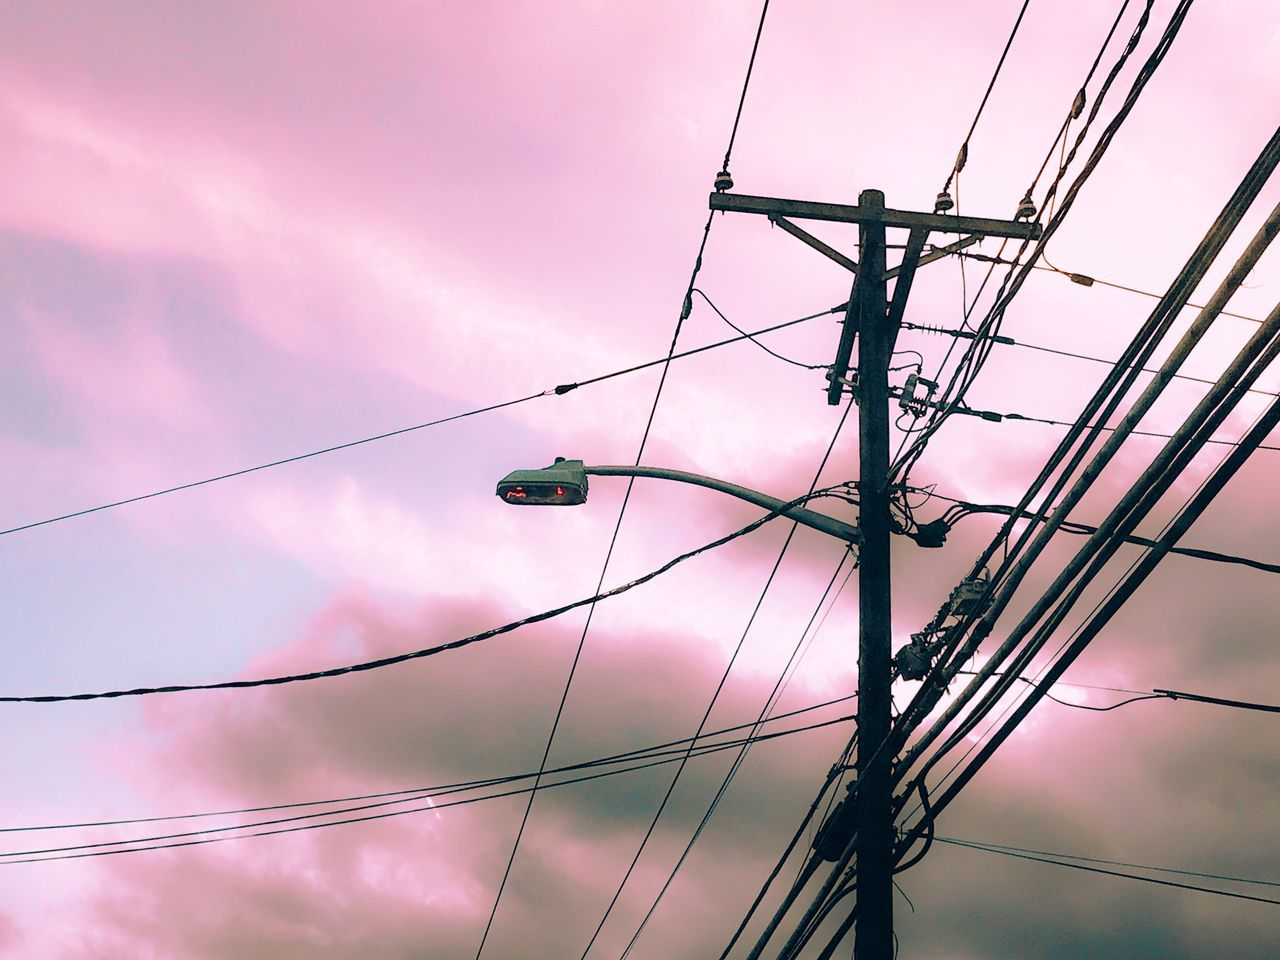 Cable Connection Power Supply Electricity  Power Line  Sky Low Angle View Technology Sunset Complexity Fuel And Power Generation Cloud - Sky Electricity Pylon No People Outdoors Telephone Line Day Pink Pink Color Sky And Clouds Cloud_collection  Simplicity